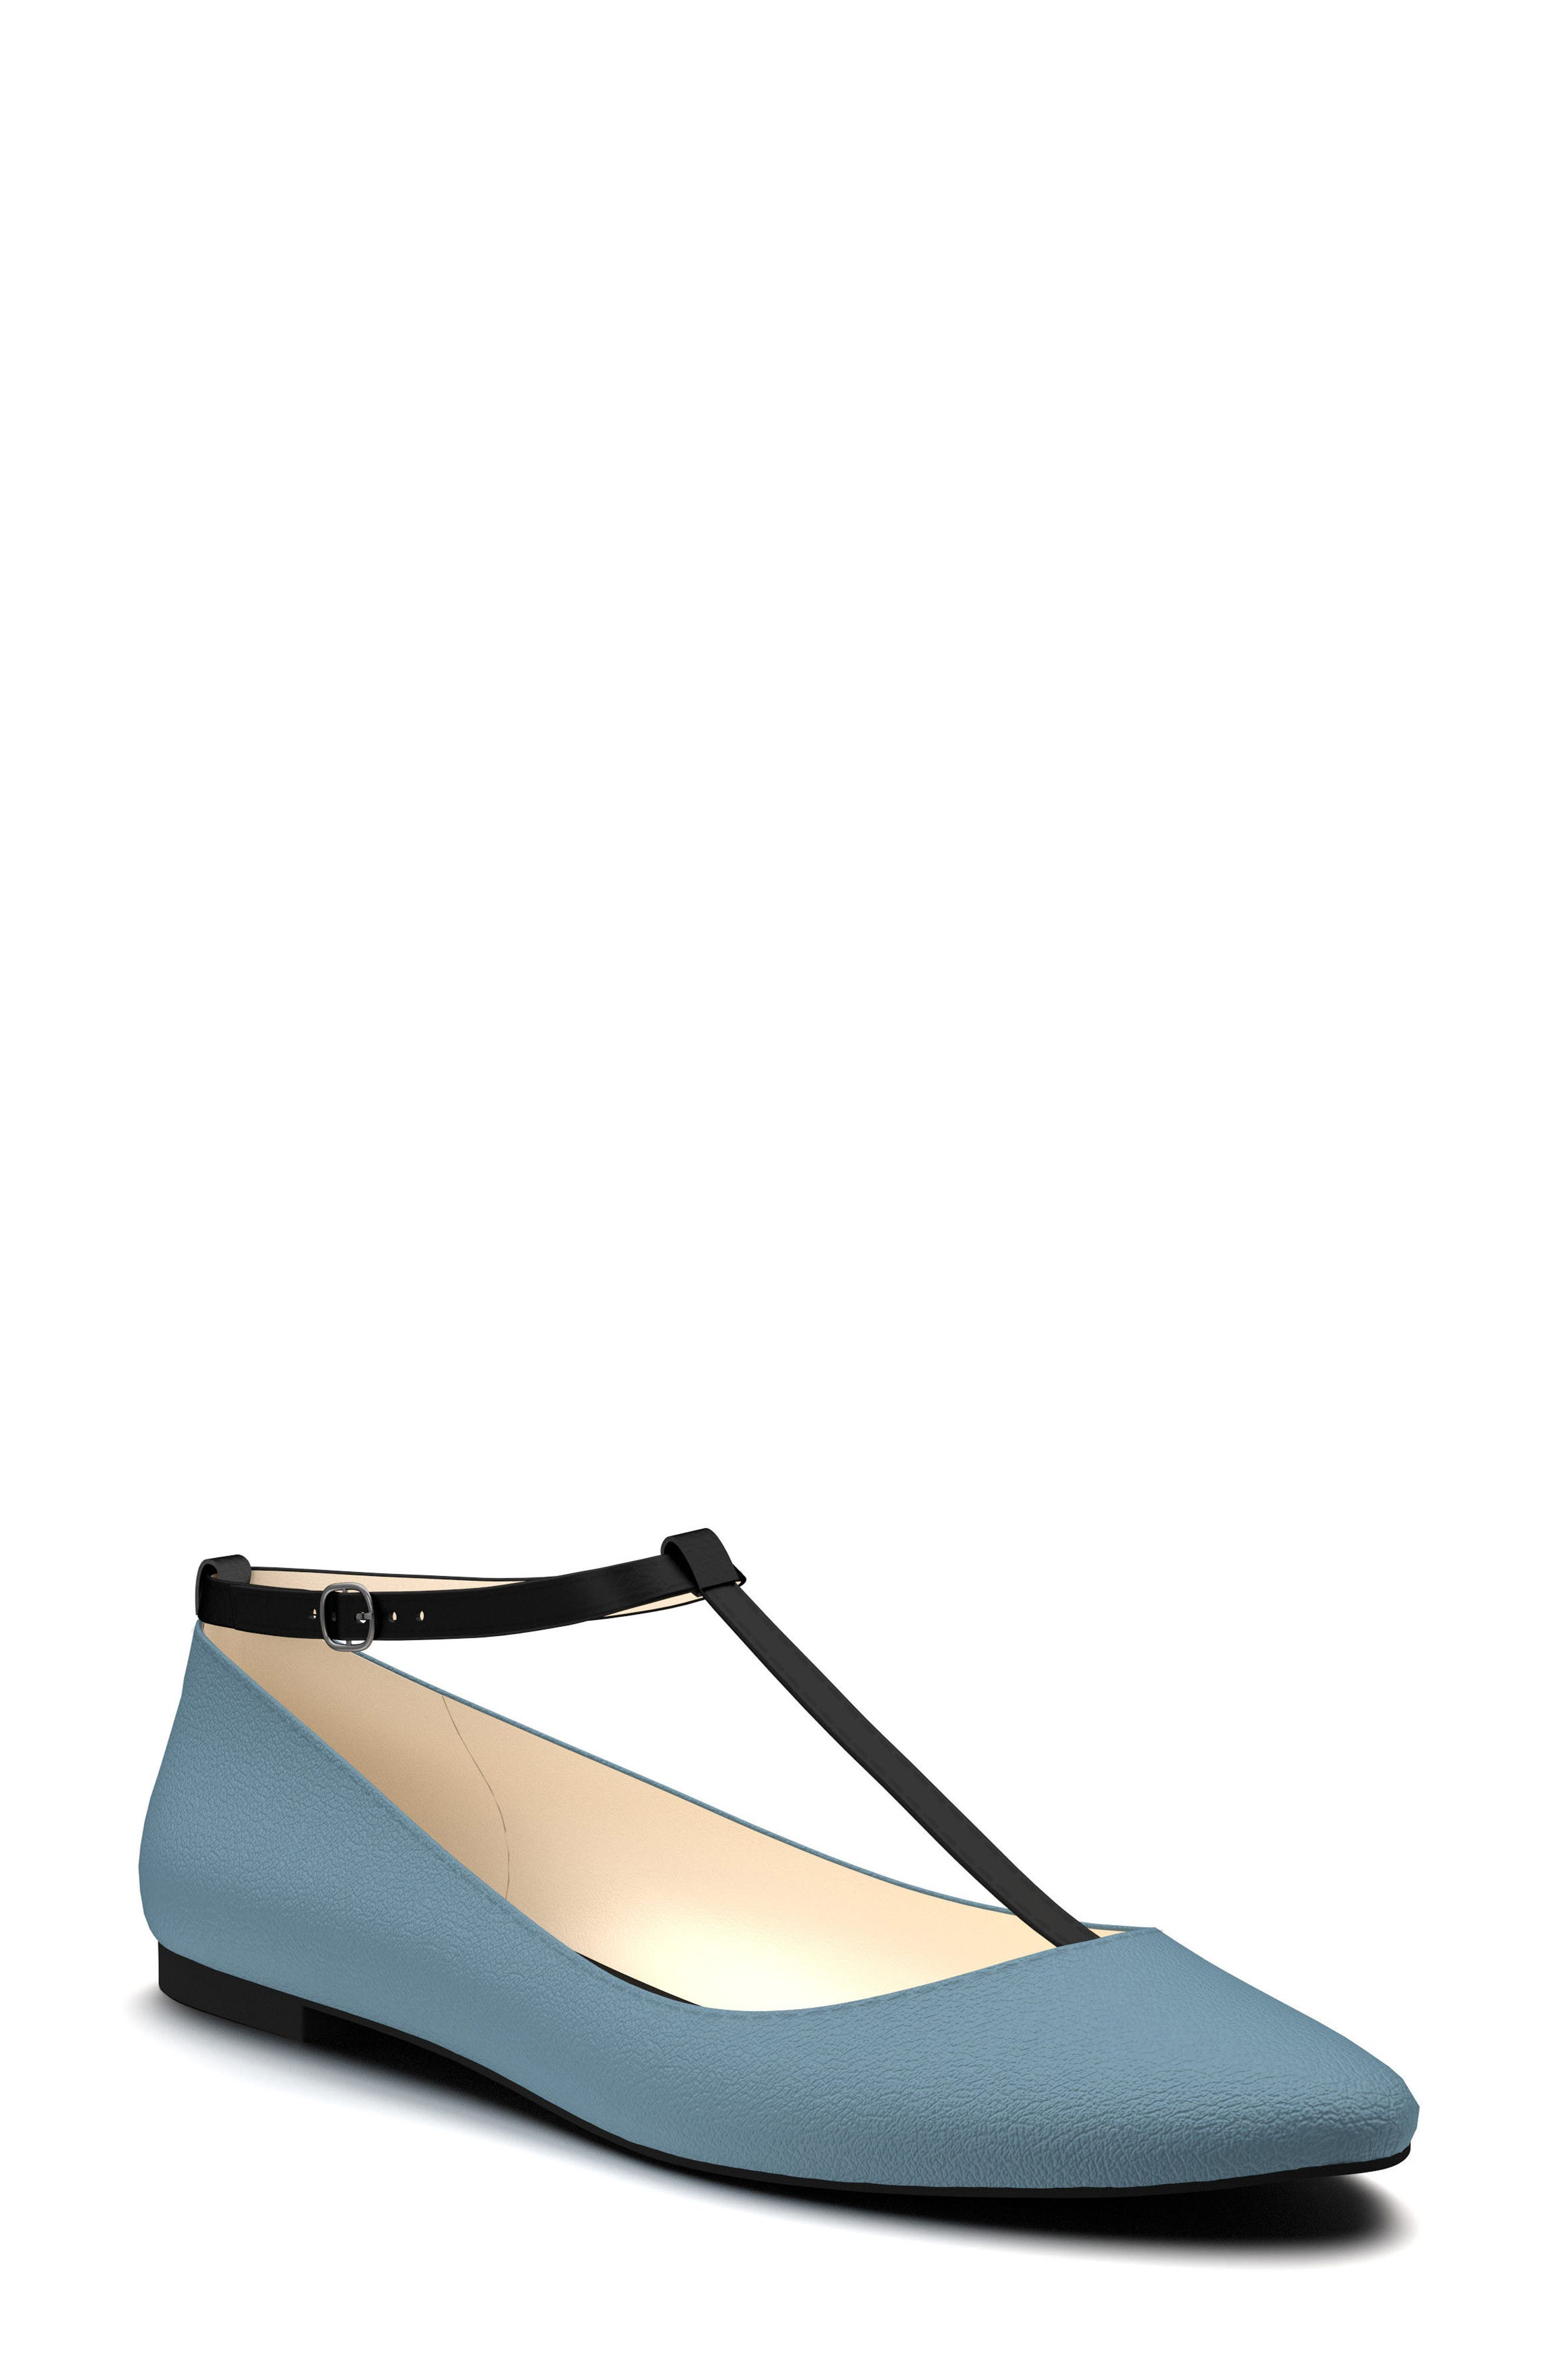 Alternate Image 1 Selected - Shoes of Prey T-Strap Ballet Flat (Women)